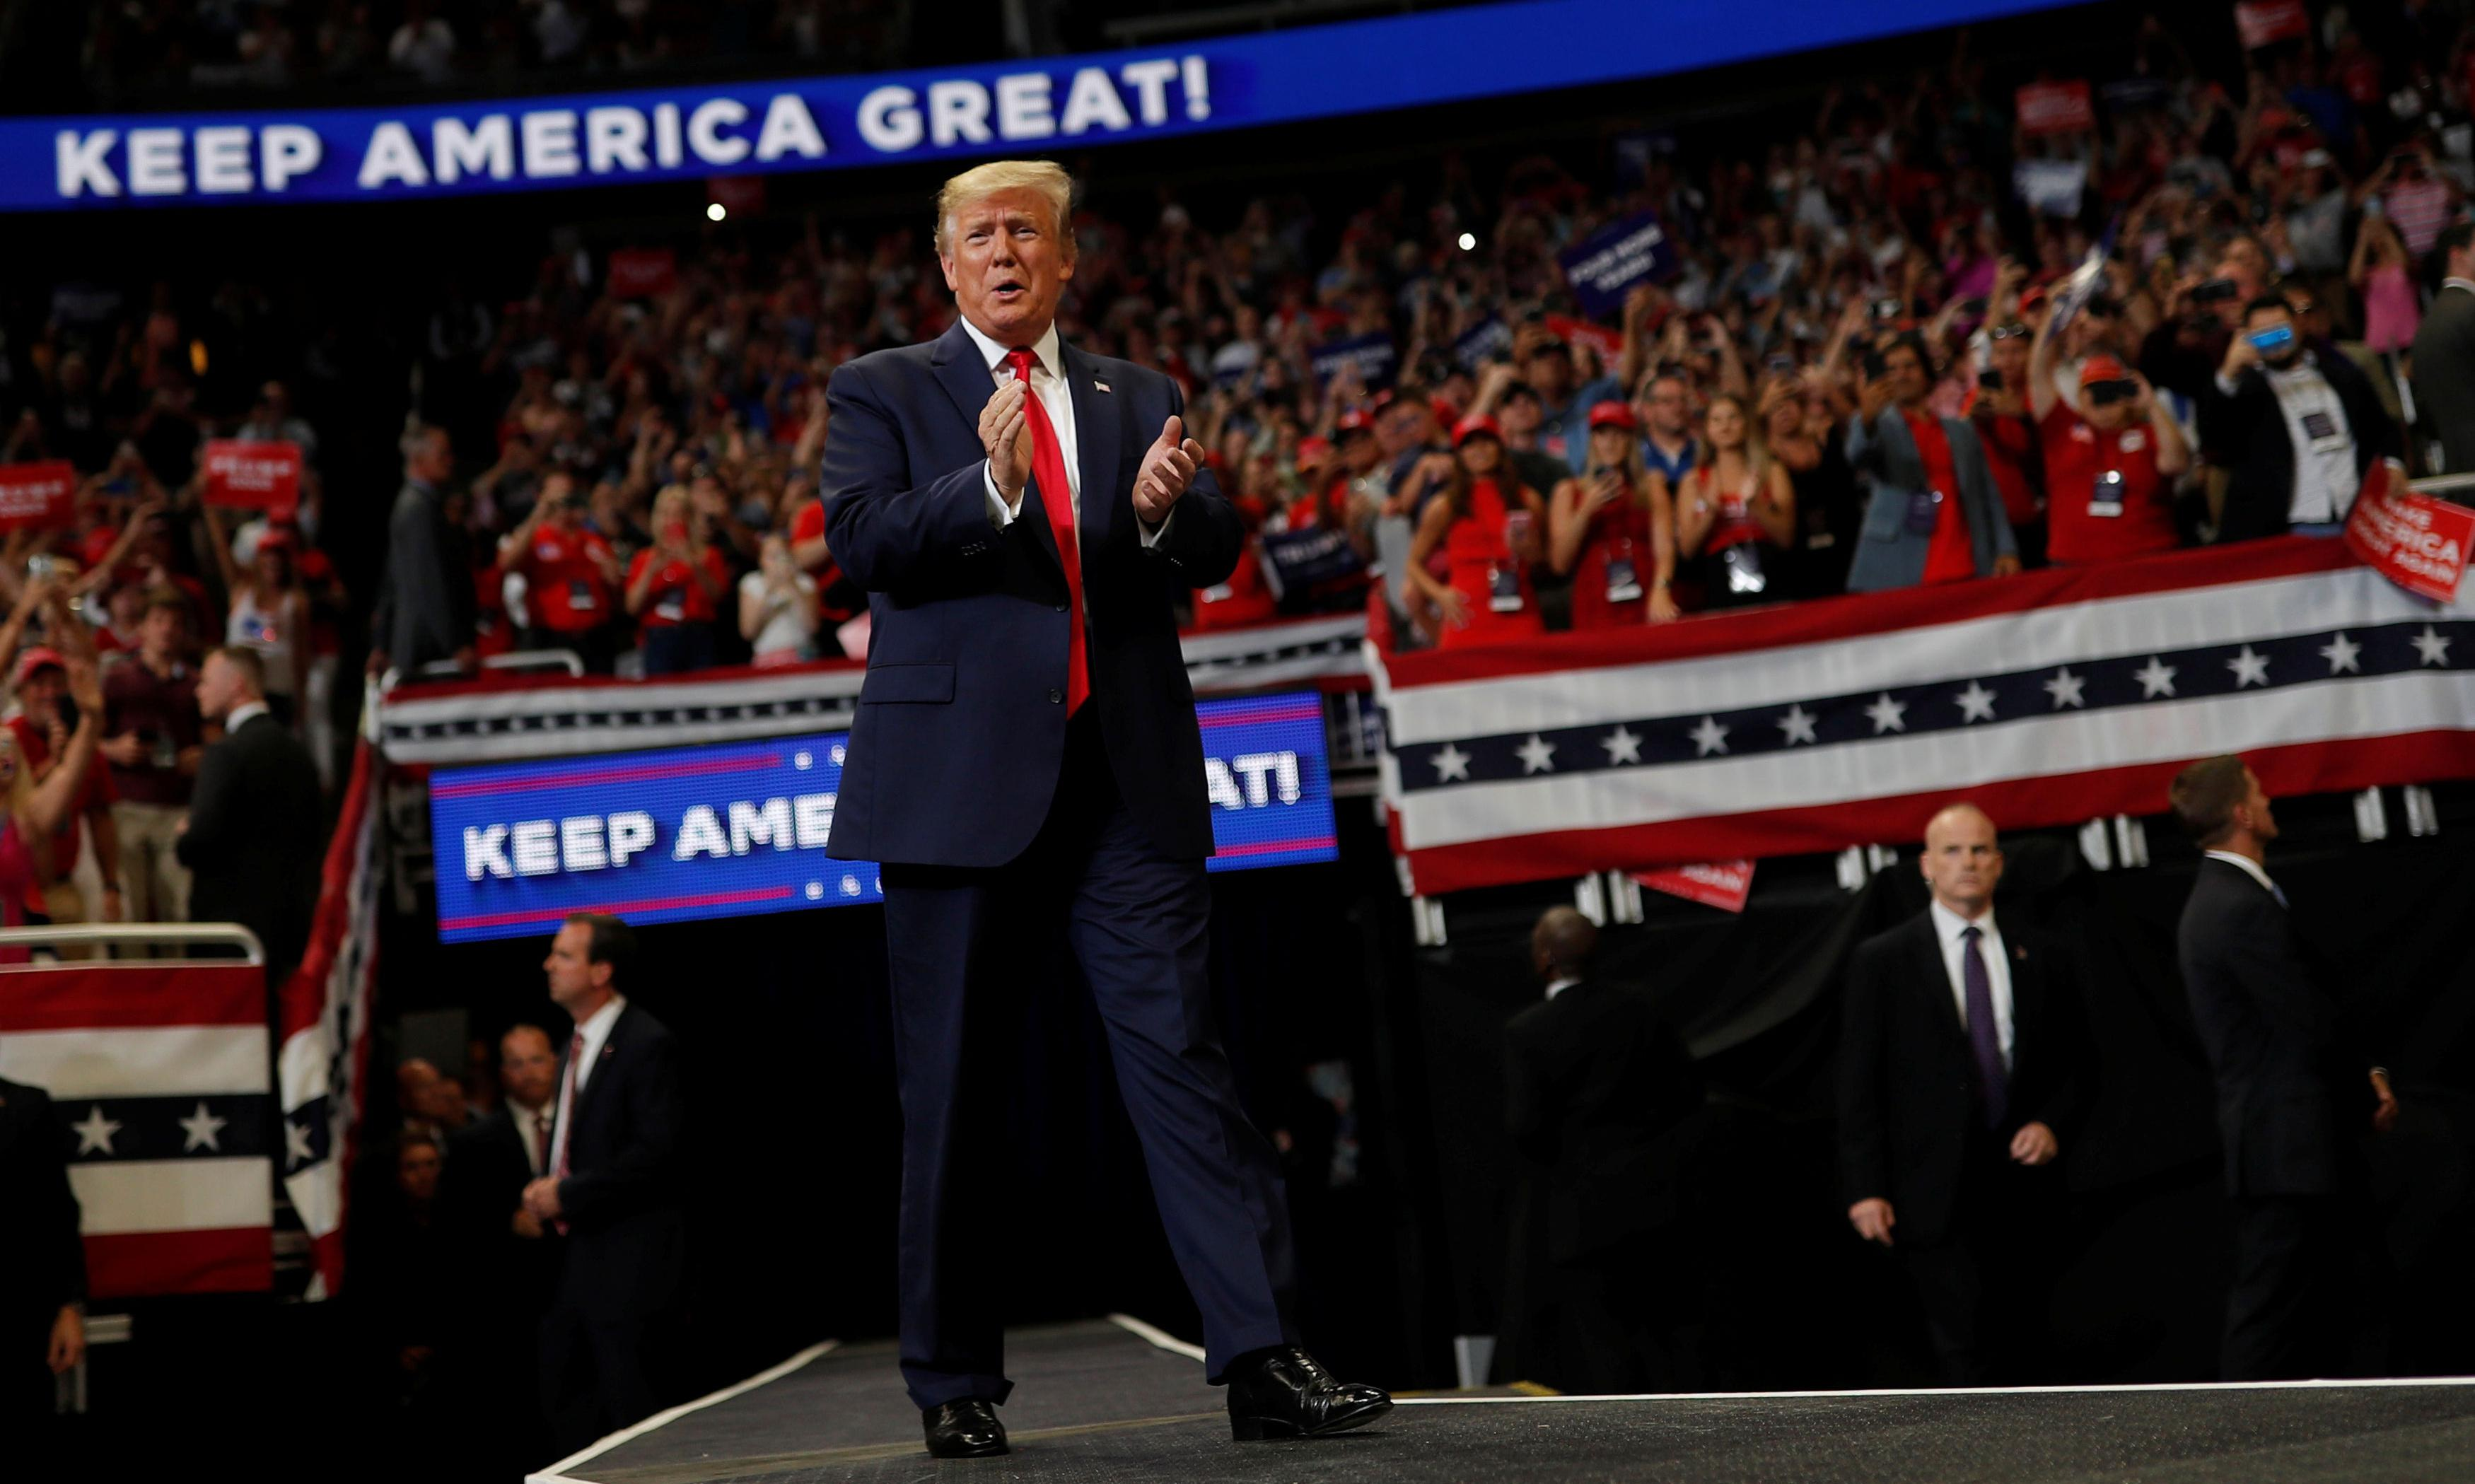 Trump sets stage for 2020 fight with false claims and recycled attacks